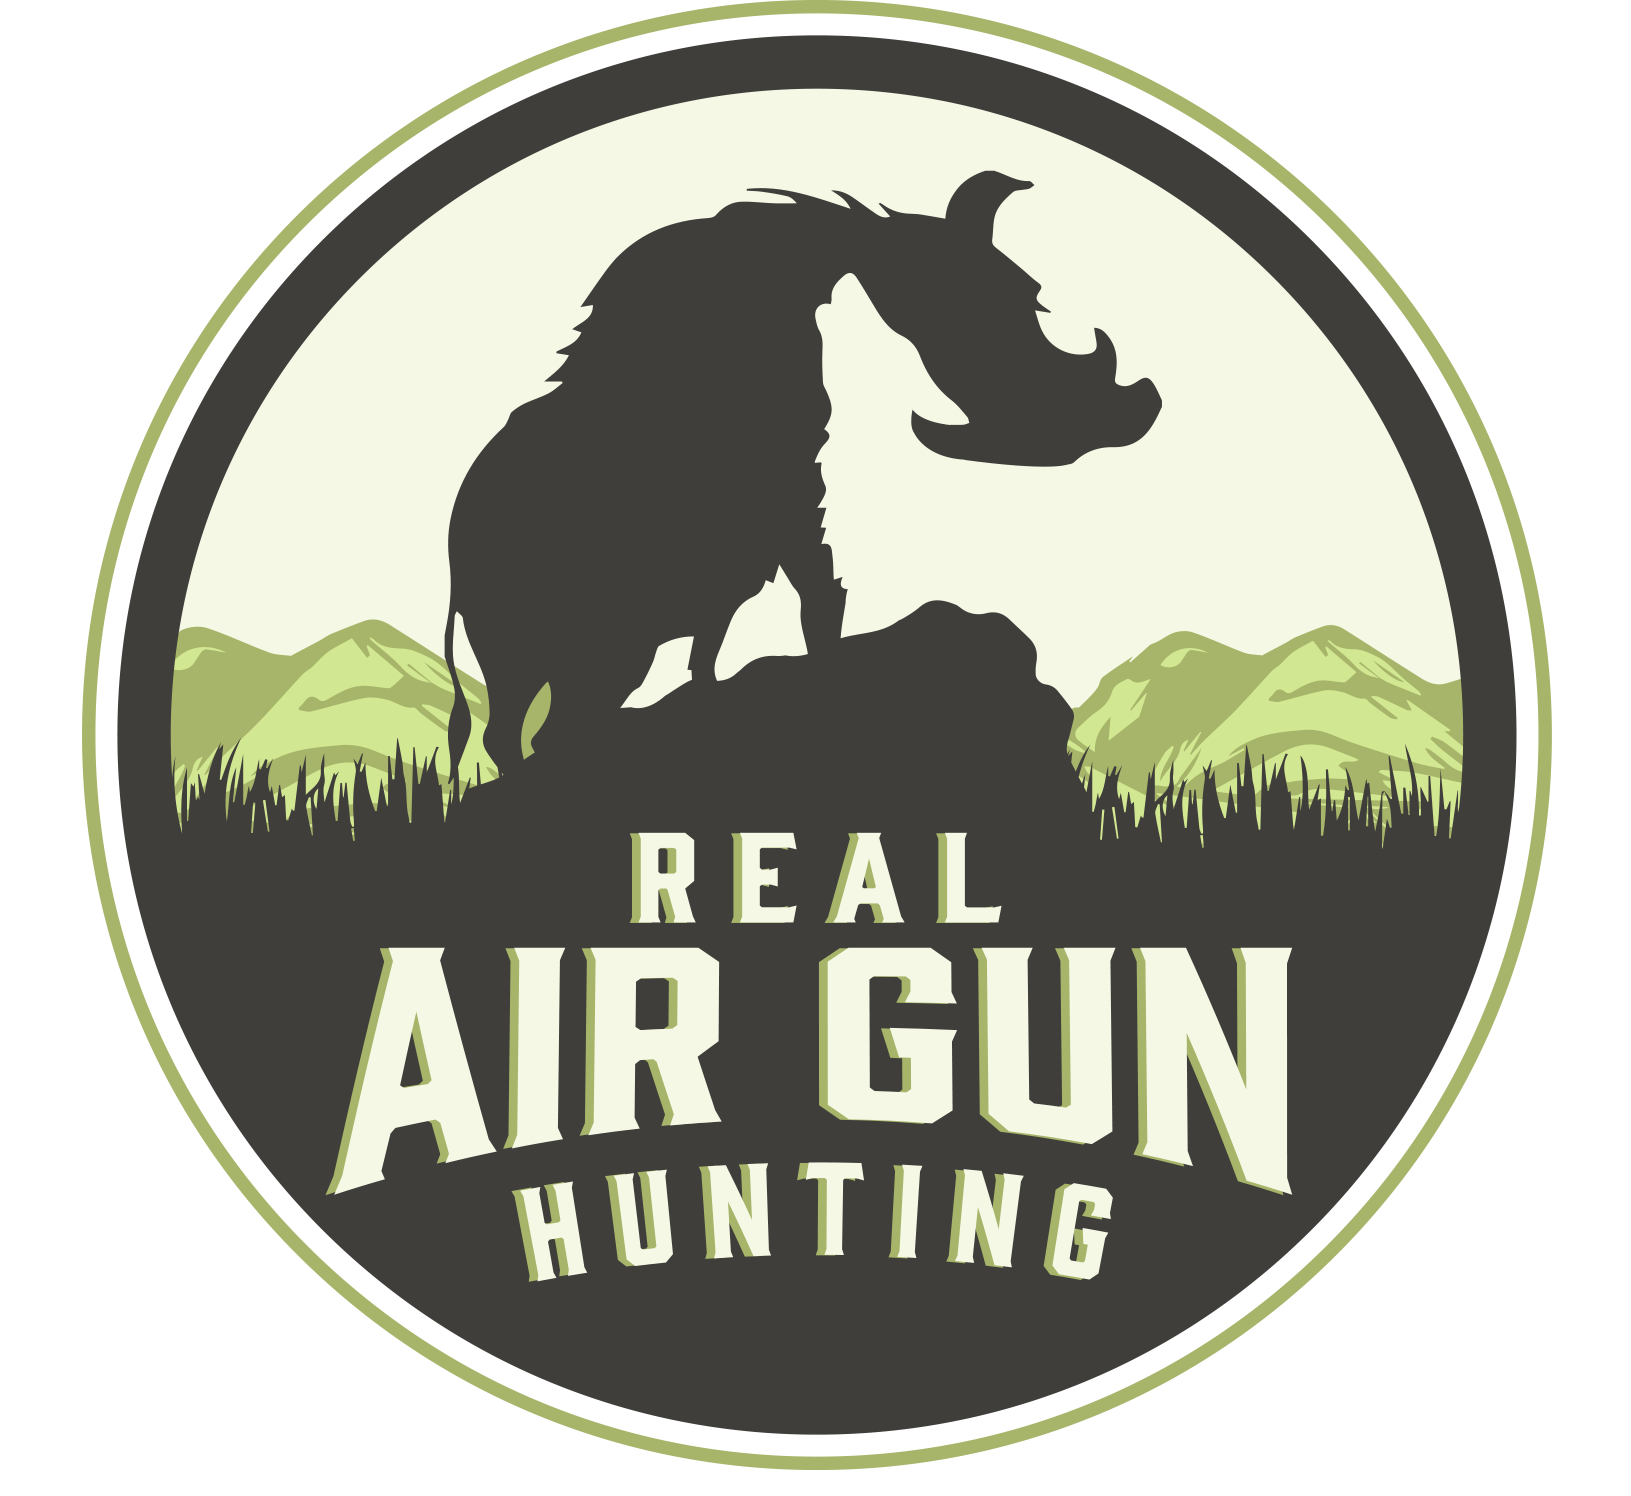 Real Air Gun Hunting